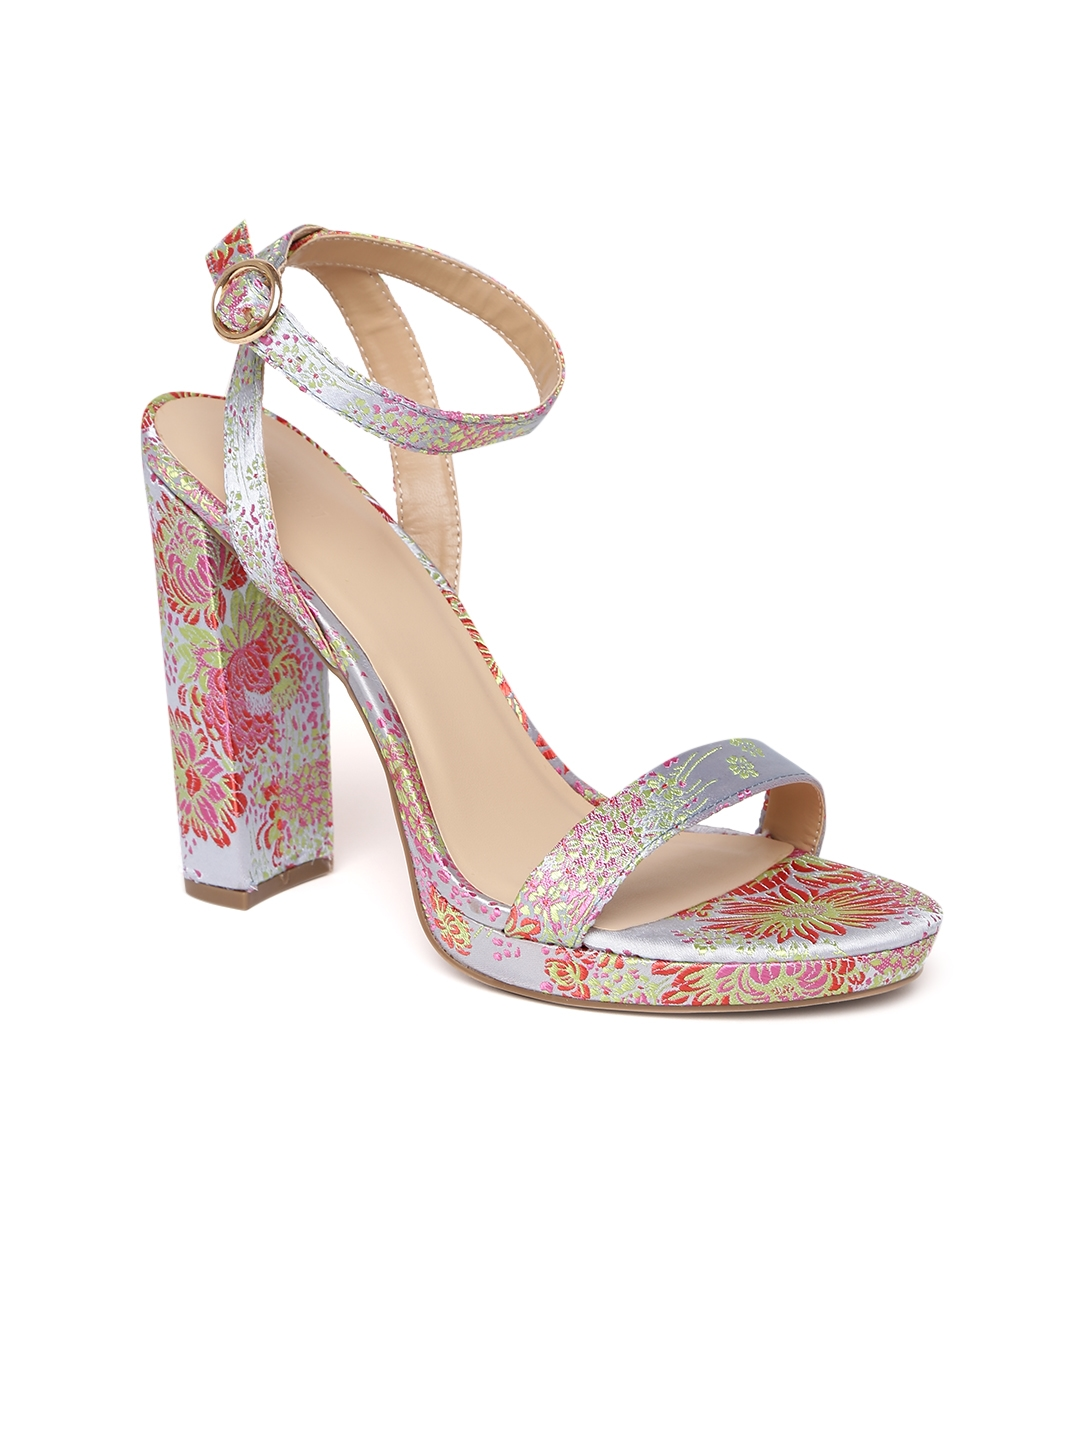 Buy FOREVER 21 Women Pink   Blue Embroidered Sandals - Heels for ... 1b4e94c67bd2